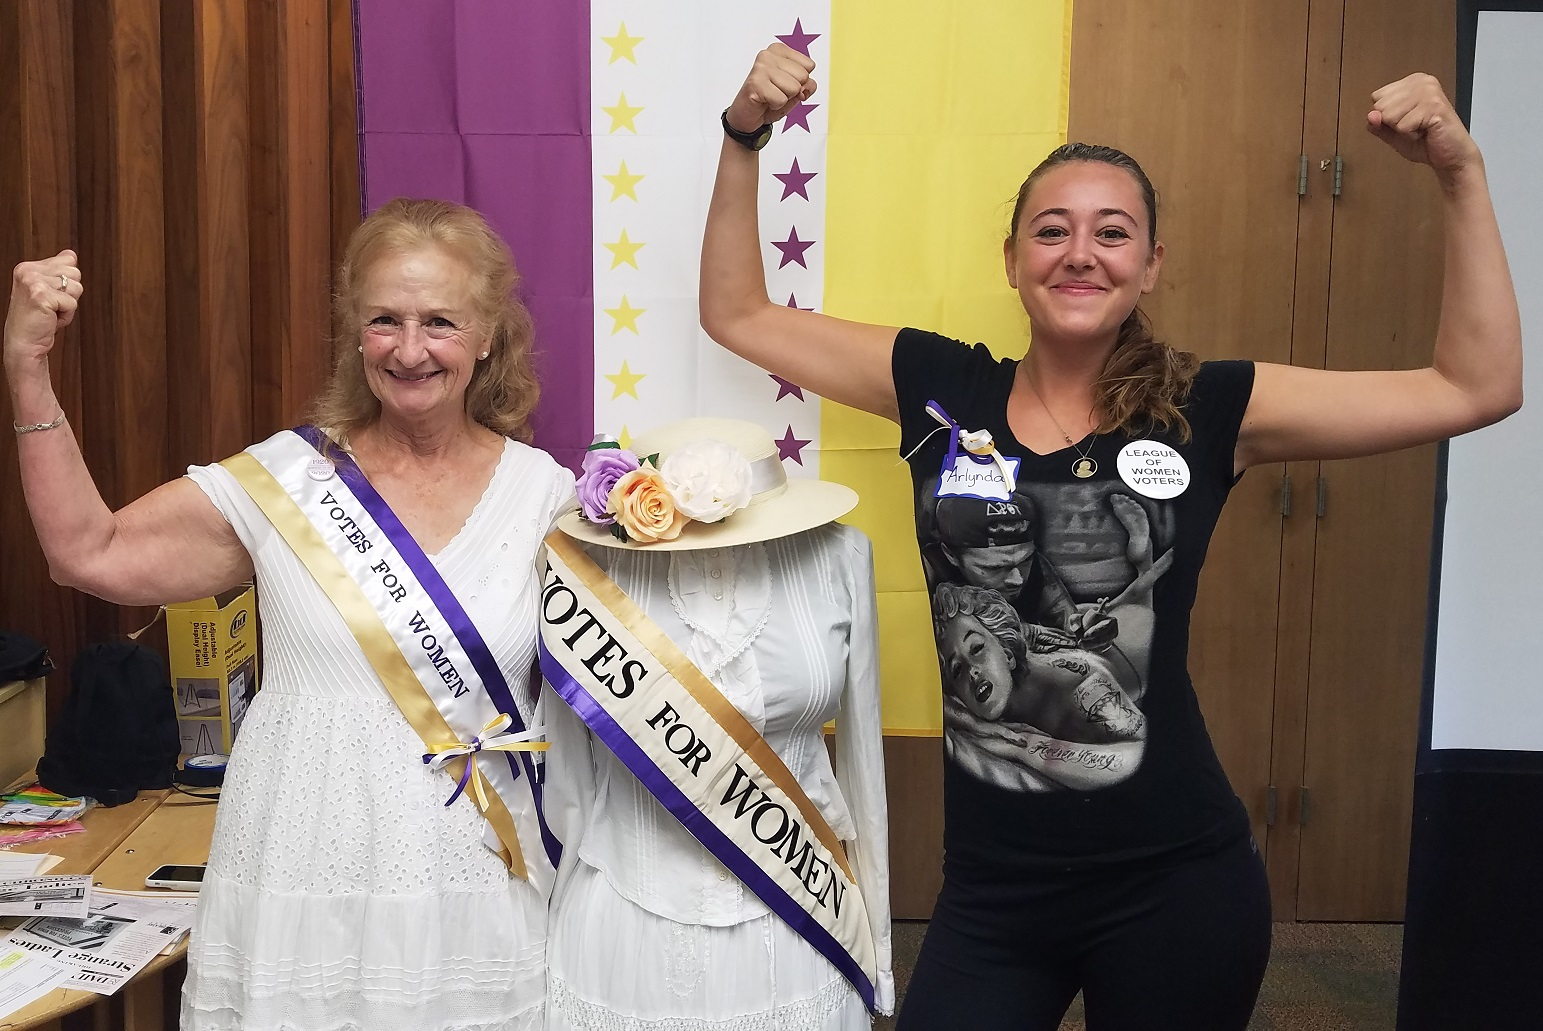 Two women celebrating suffrage with manikin dressed as suffragist